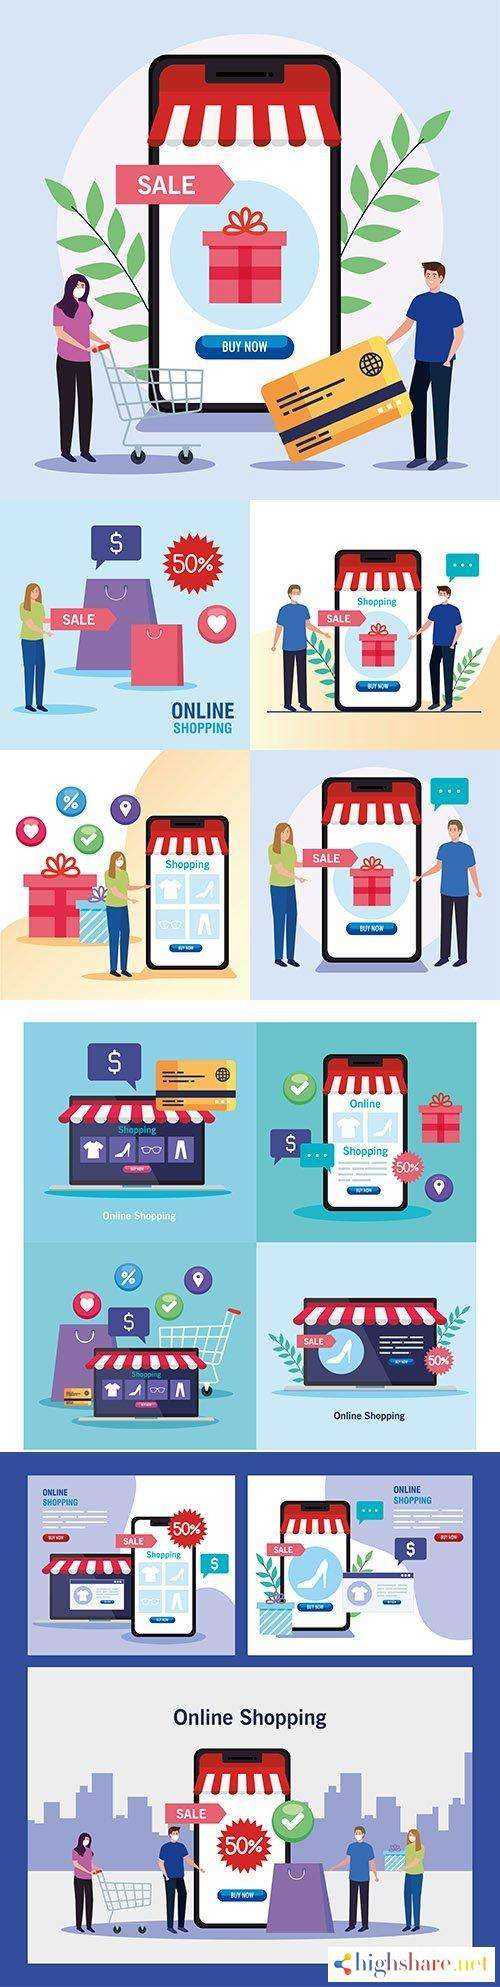 shopping online e commerce market and retail illustration 5f4281d08a559 - Shopping online e-commerce market and retail illustration